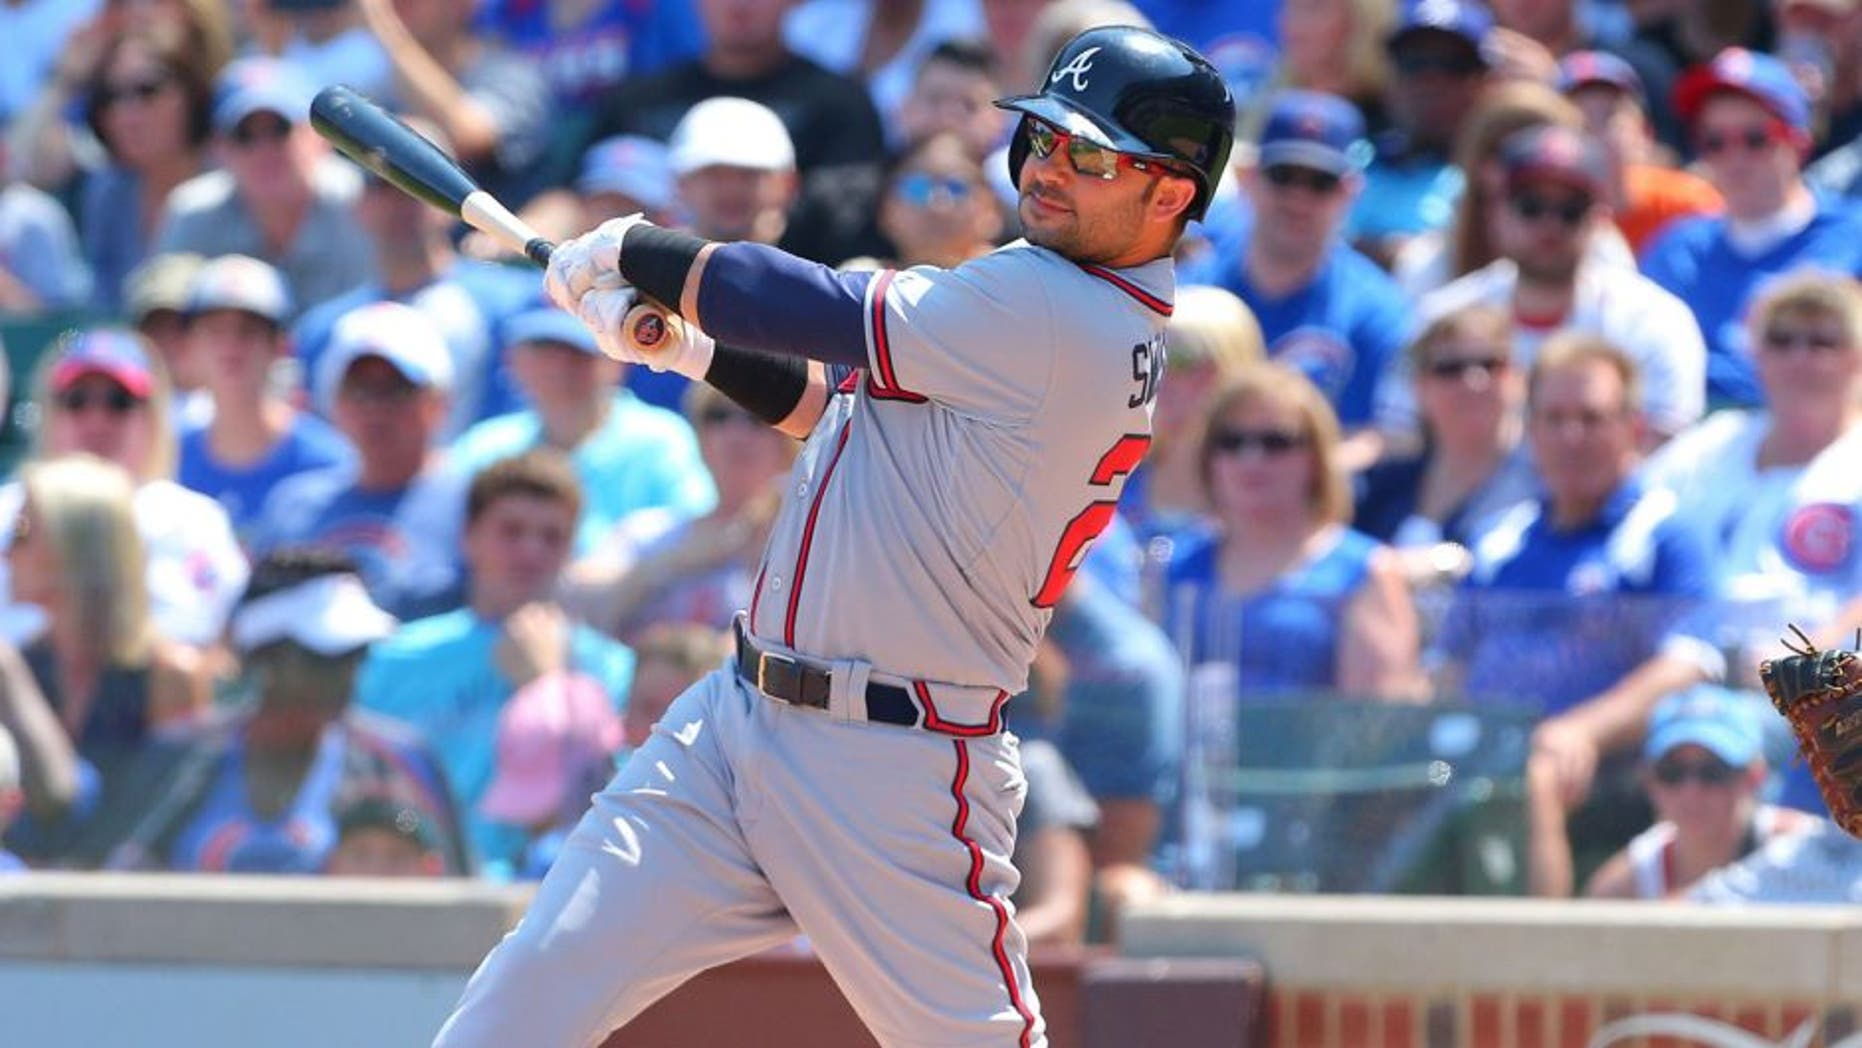 Aug 23, 2015; Chicago, IL, USA; Atlanta Braves first baseman Nick Swisher (23) hits a single during the first inning against the Chicago Cubs at Wrigley Field. Mandatory Credit: Dennis Wierzbicki-USA TODAY Sports